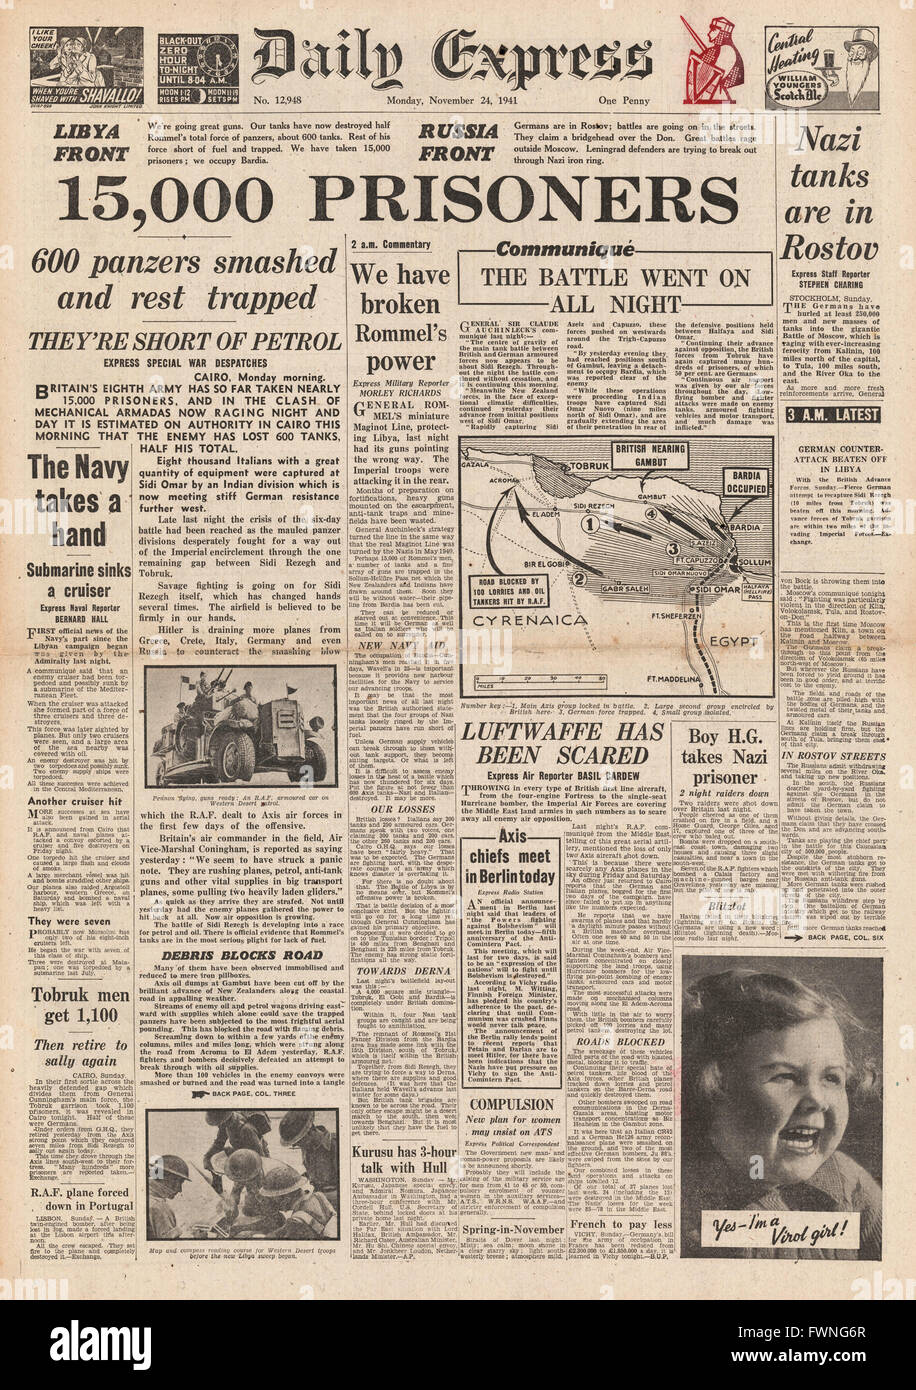 1941 front page Daily Express Battle for Libya and Battle for Rostov - Stock Image